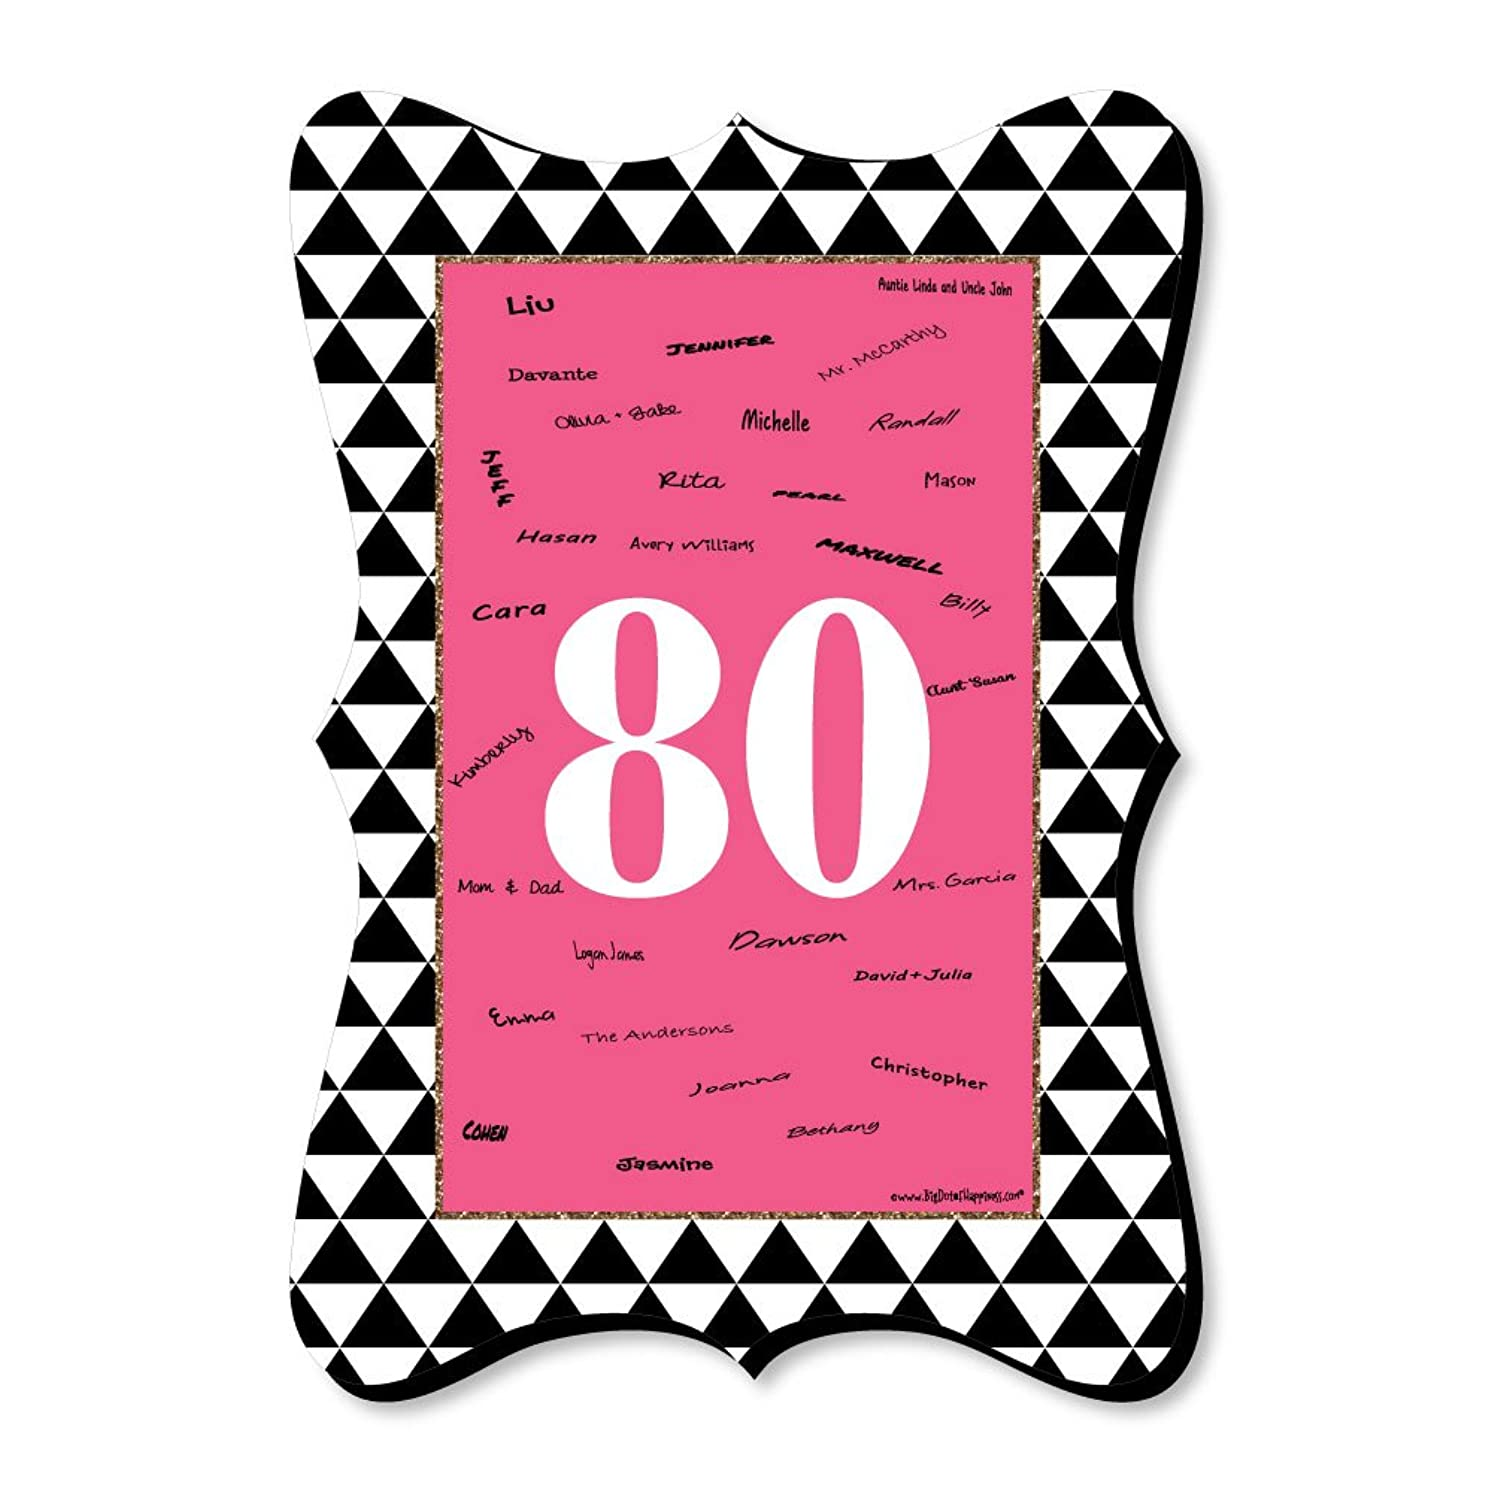 Chic 80th Birthday - Pink, Black and Gold - Unique Alternative Guest Book - Birthday Party Signature Mat